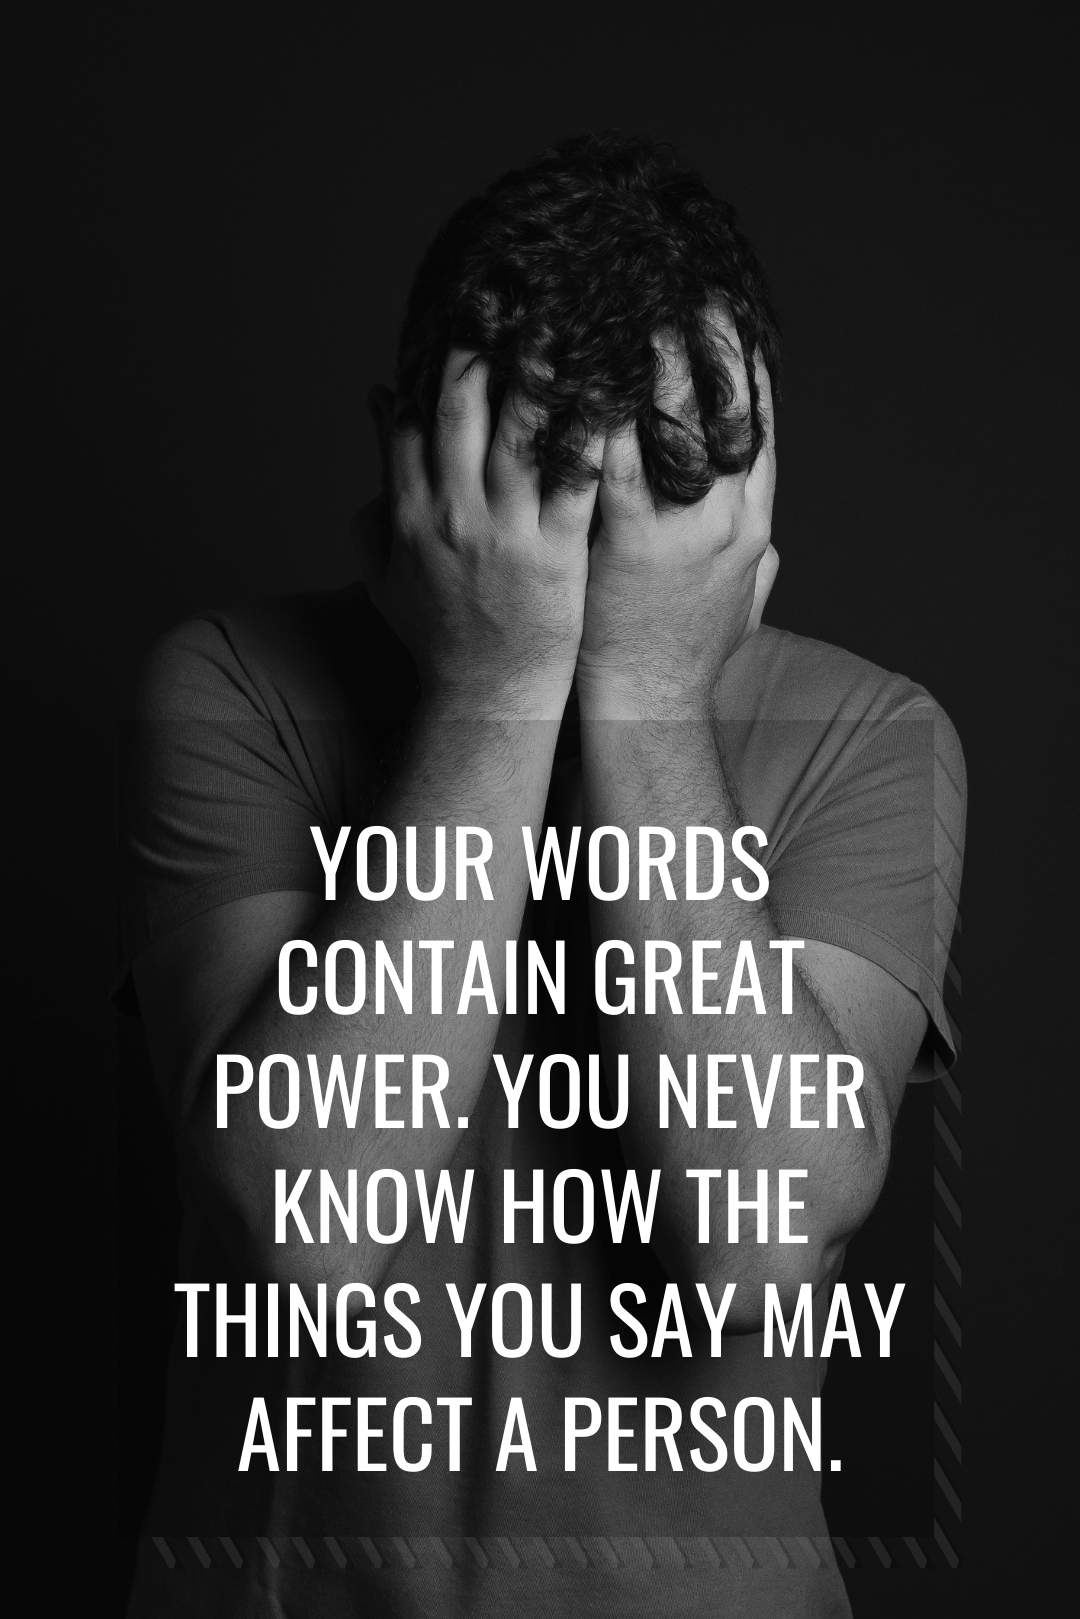 Your words contain great power. You never know how the things you say may affect a person. (1)